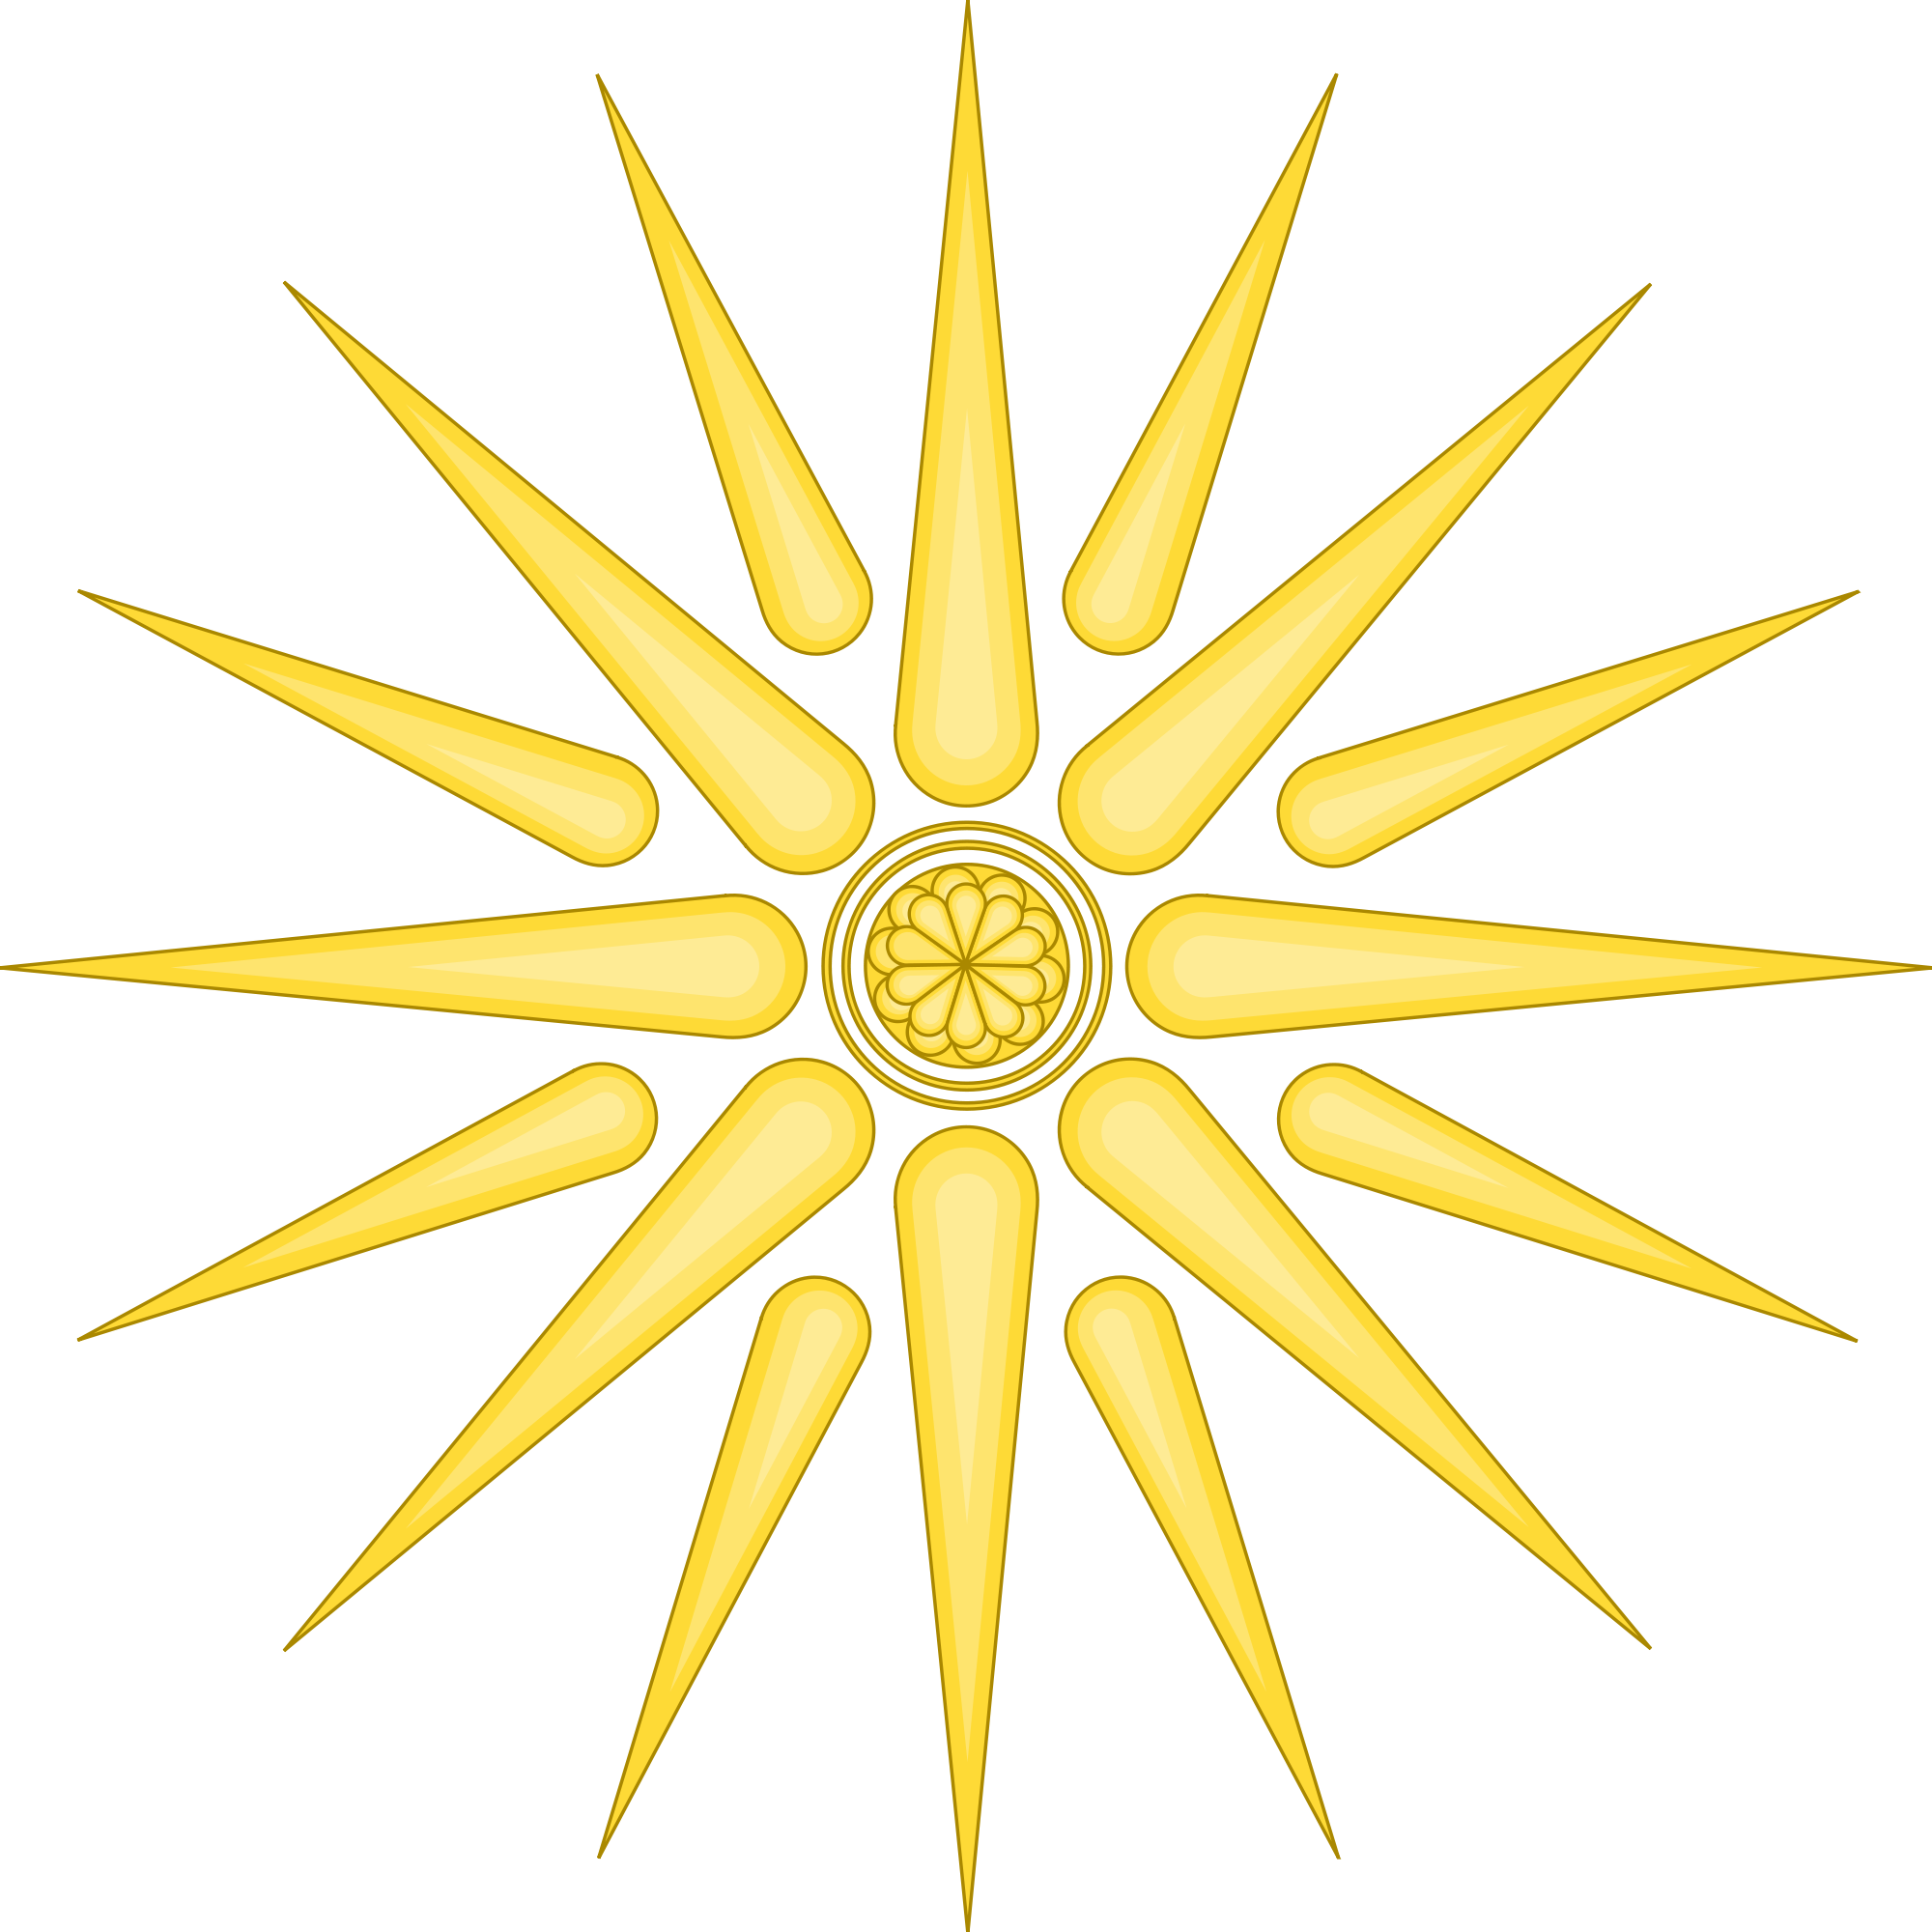 File:Vergina Sun WIPO.svg - Wikimedia Commons png royalty free